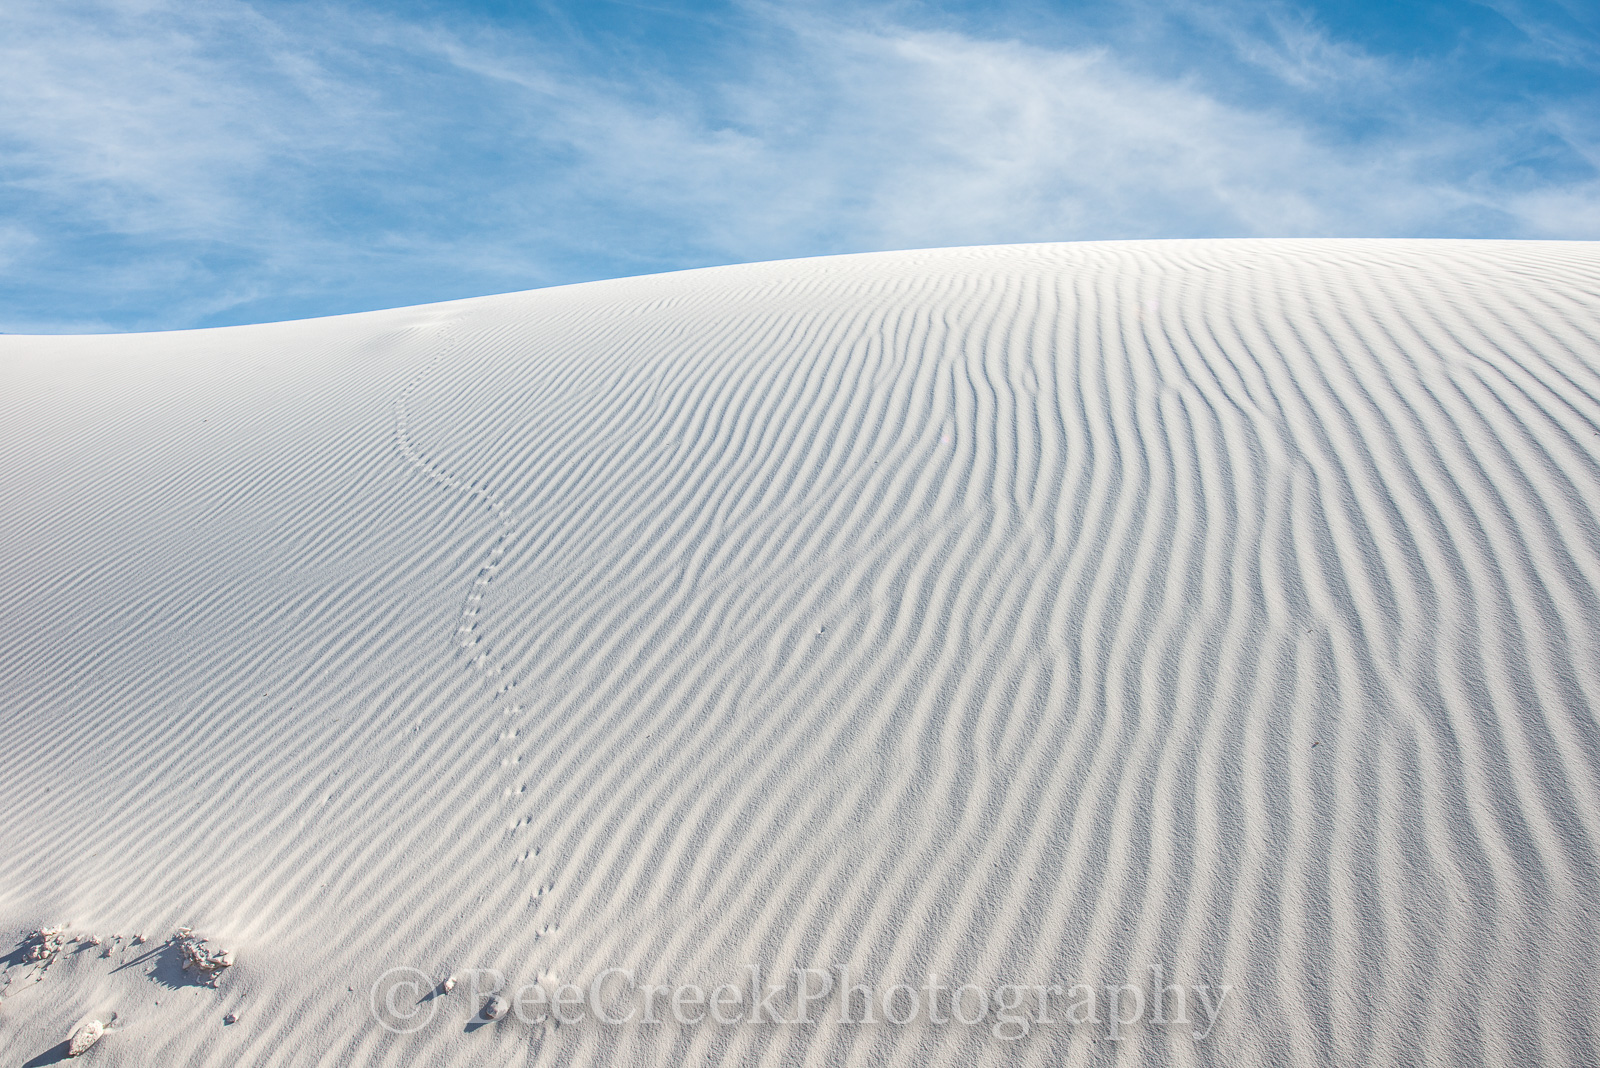 White Sands,Alamagorda nm, New Mexico, New Mexico Parks, White Sand National Monument, beautiful photos of white sands, dunes, flow of sand, gypsum, images of White Sands, magnificent white sand dune, photo